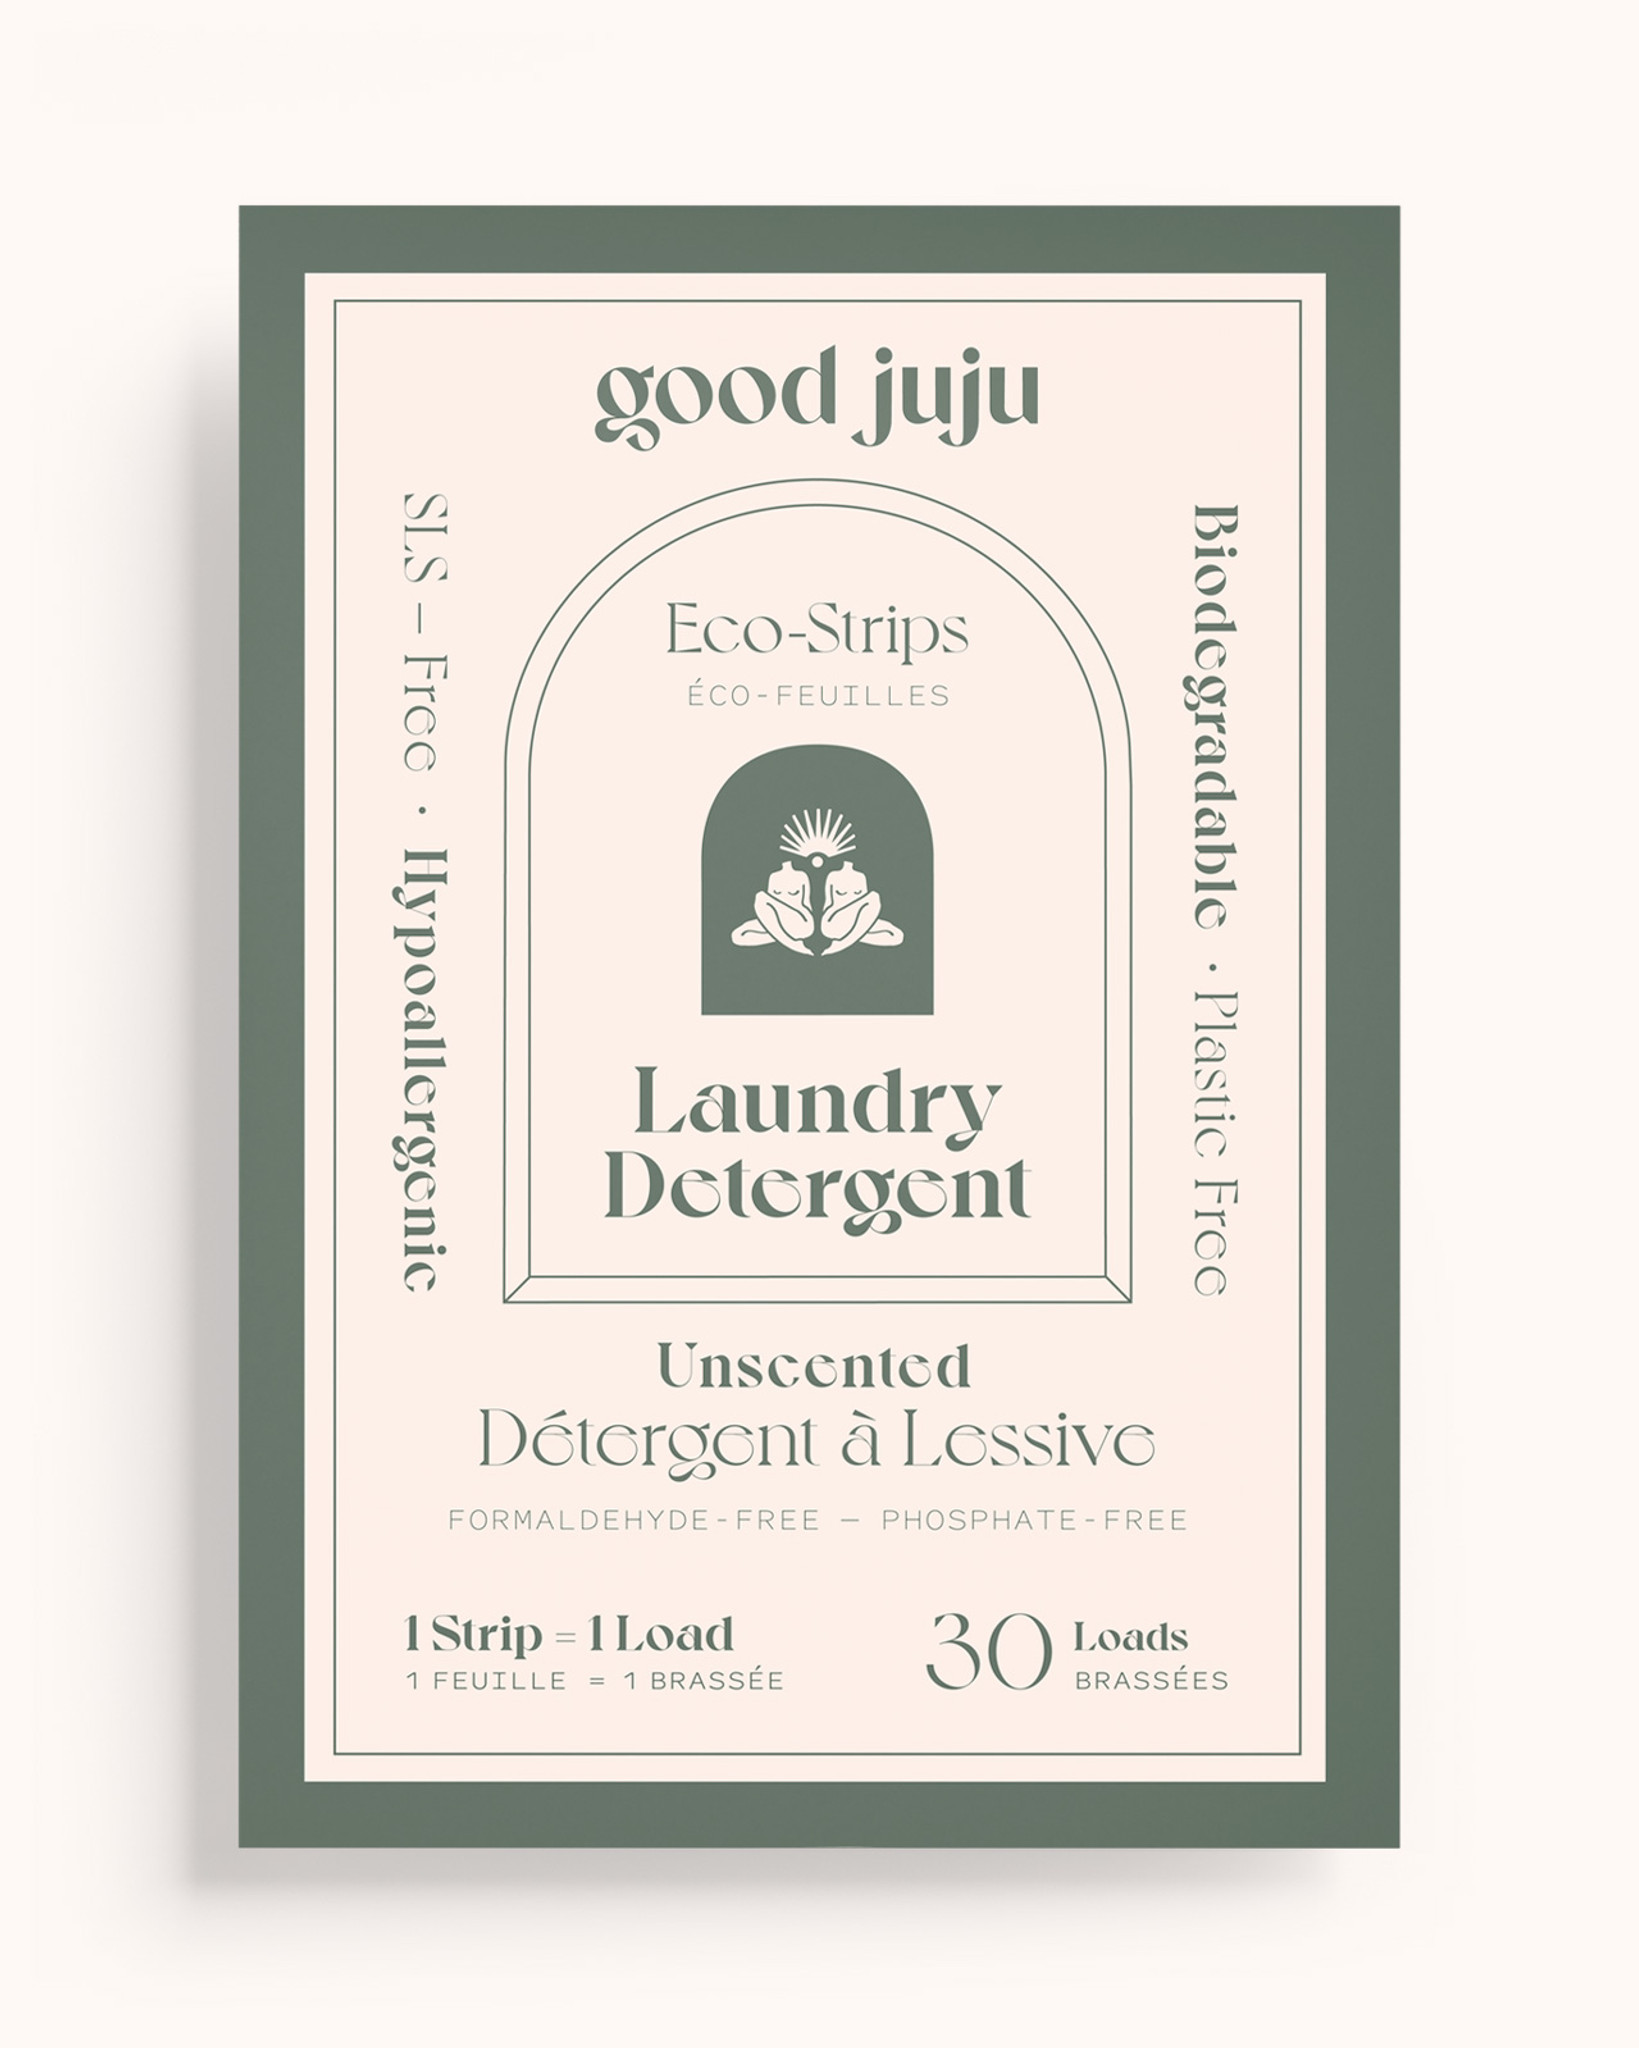 Laundry Detergent Eco-Strips (Unscented)